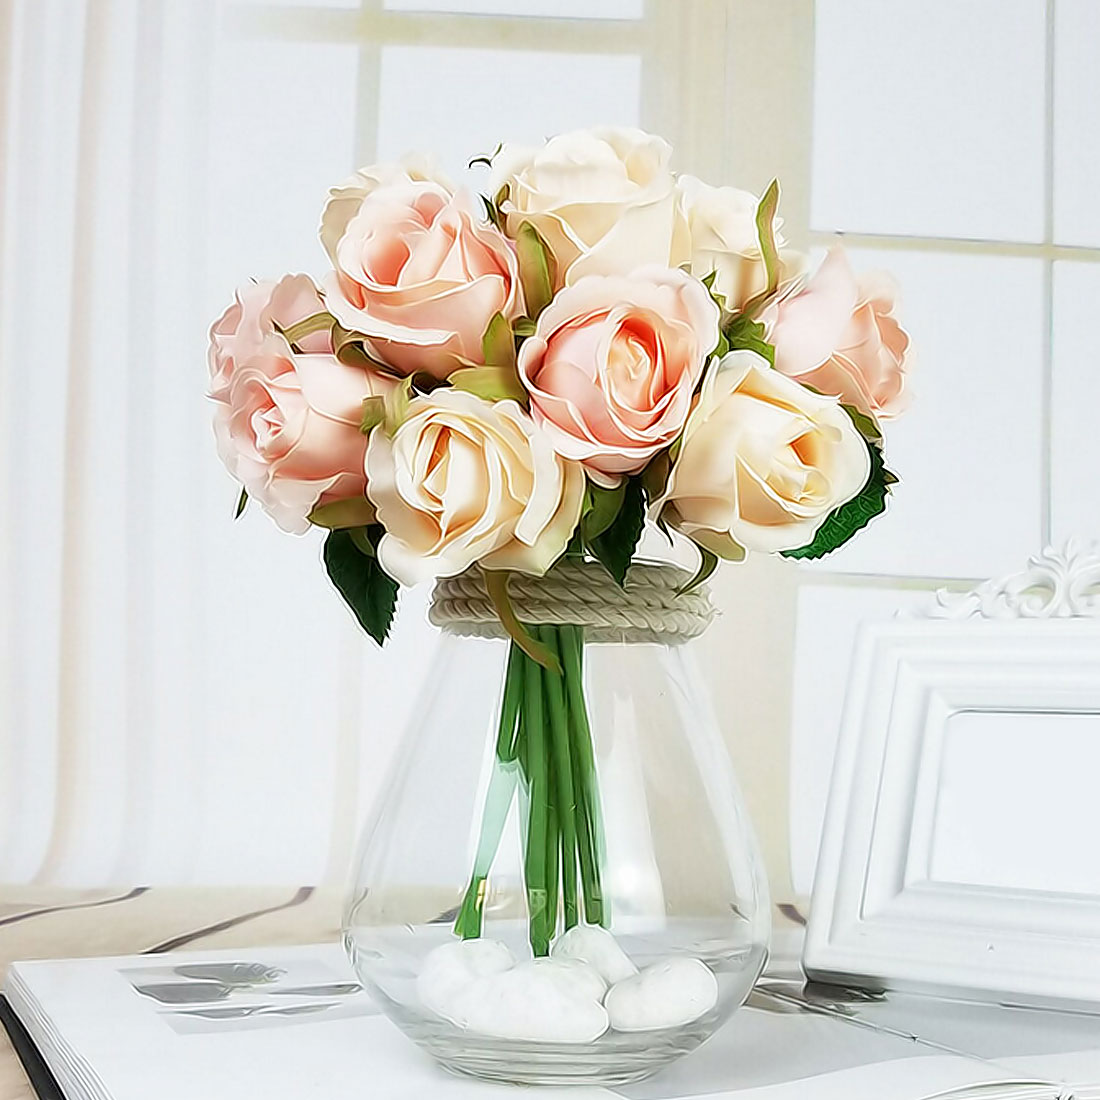 1pcs 12 Heads Blossom Decoration Flower Bouquet Artificial Fake Roses Blooms